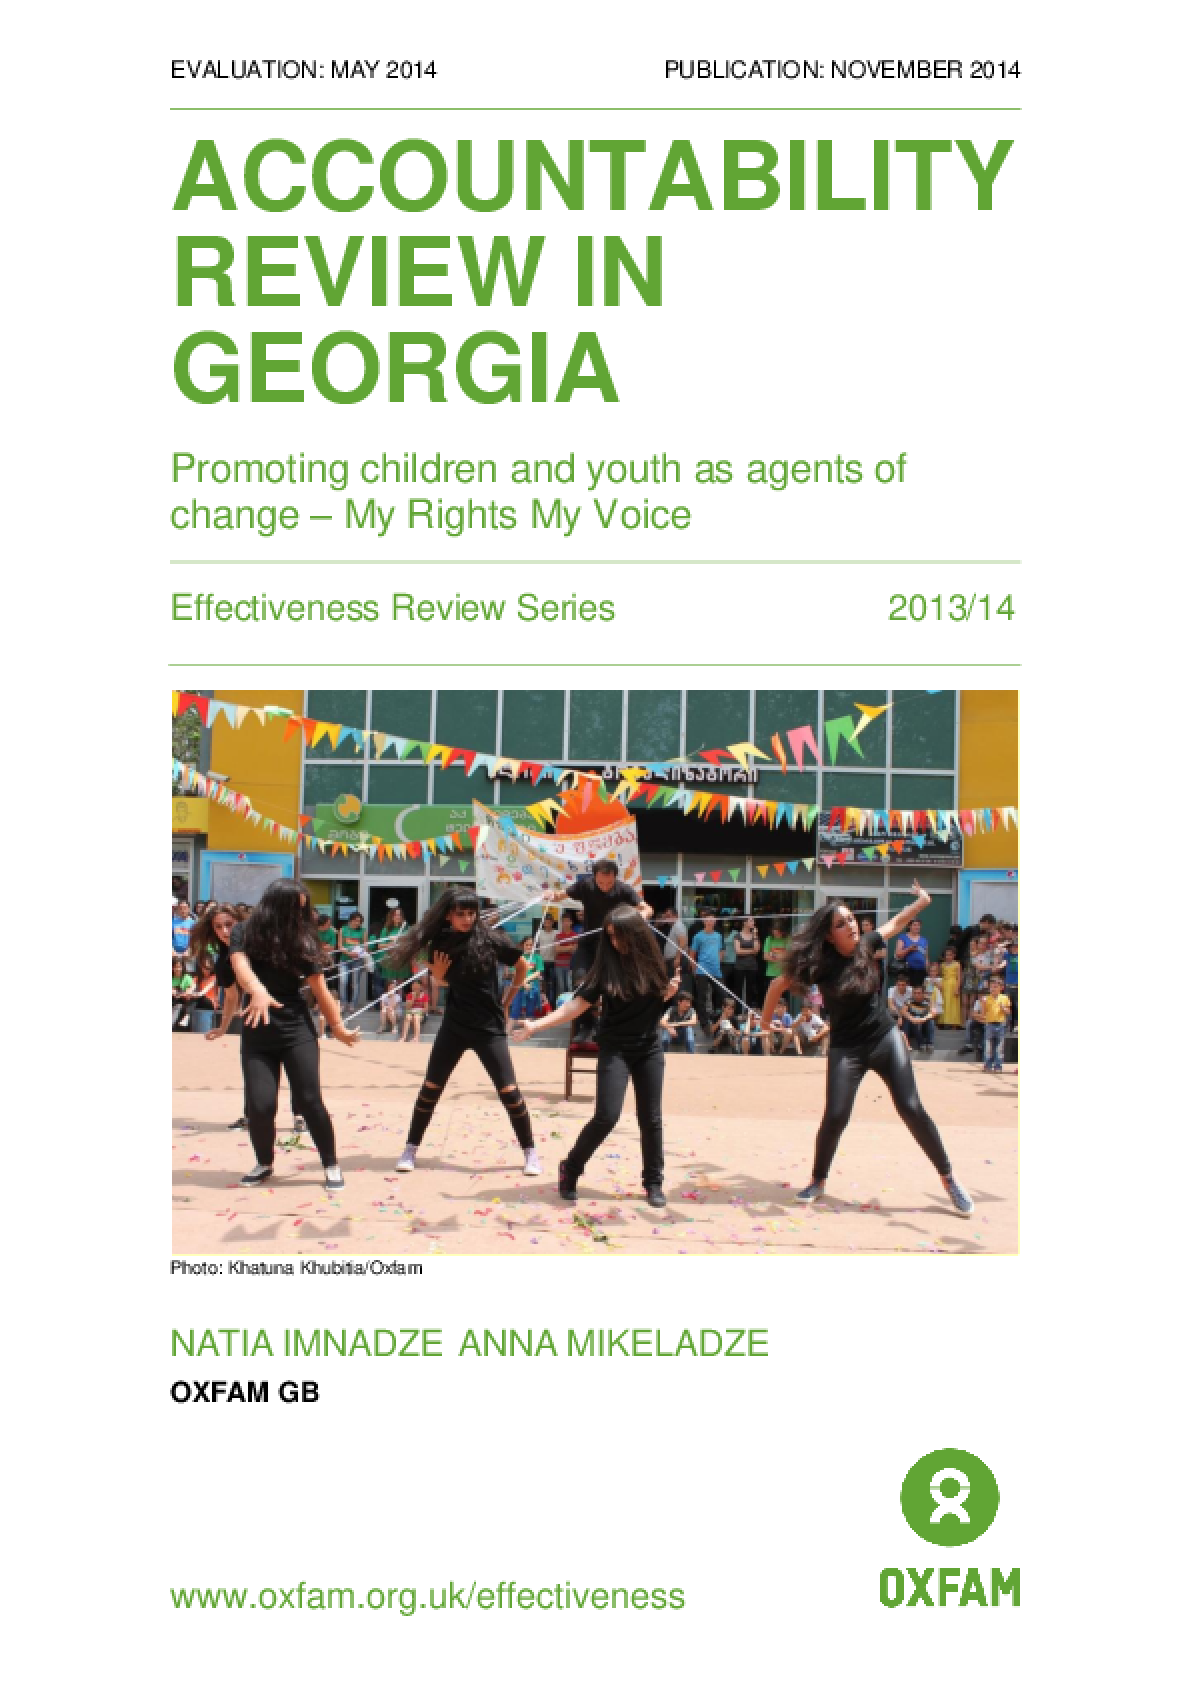 Accountability Review in Georgia: Promoting children and youth as agents of change - My Rights, My Voice